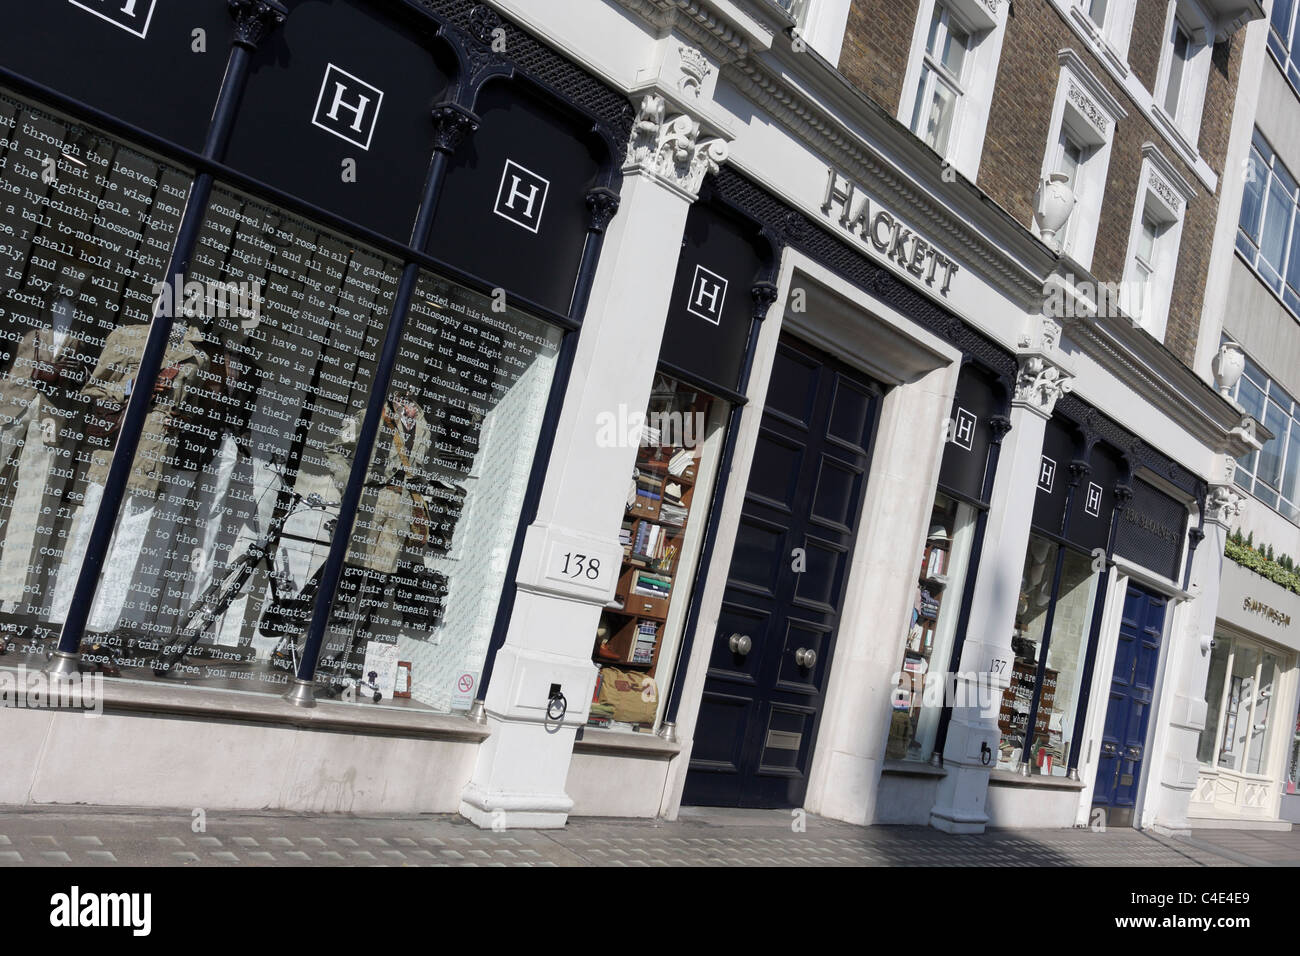 Hackett, the clothing shop for men, viewed here in Sloane Street, London. - Stock Image